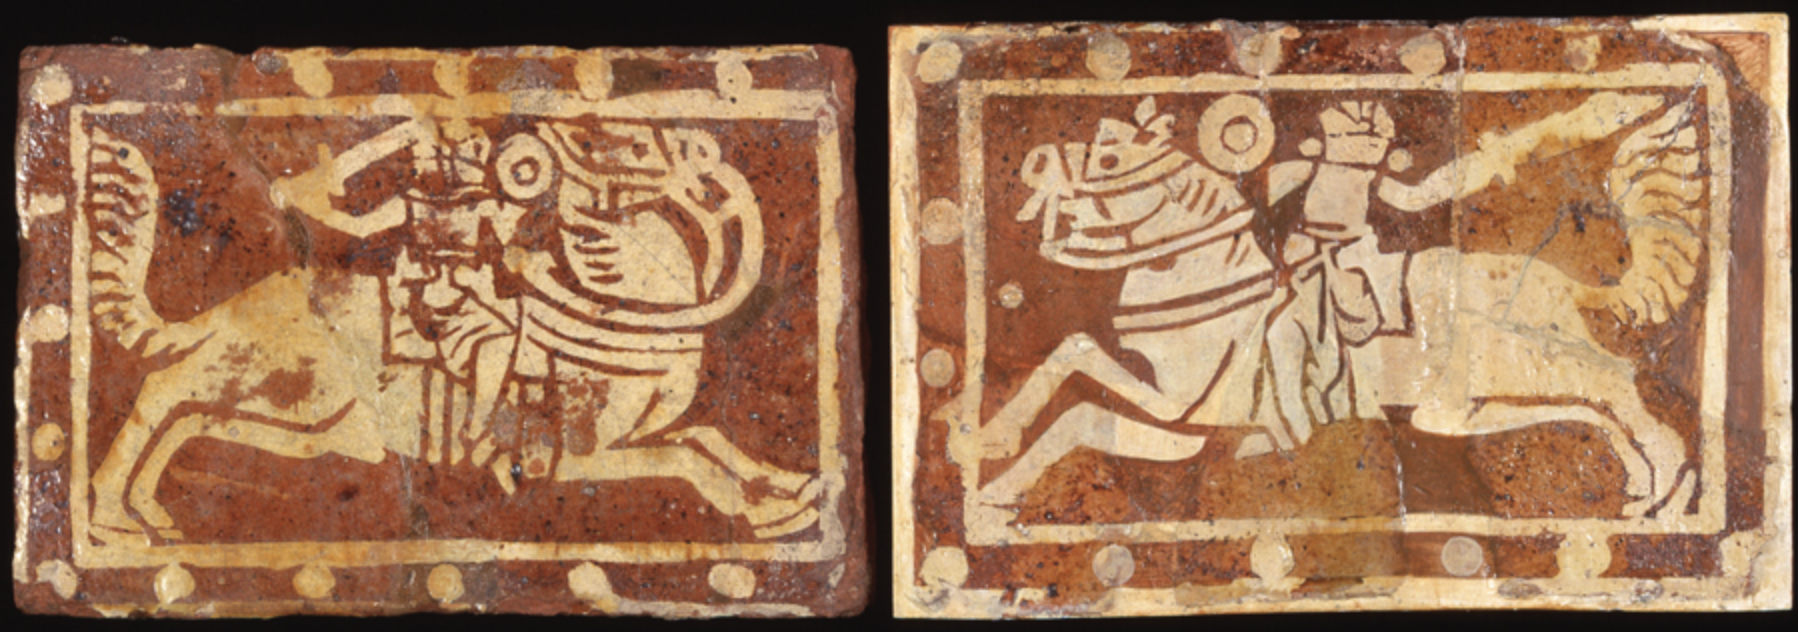 Inlaid tiles showing the battle of Richard I and Saladin, cr. 1340, Neath Abbey, Wales, U.K.